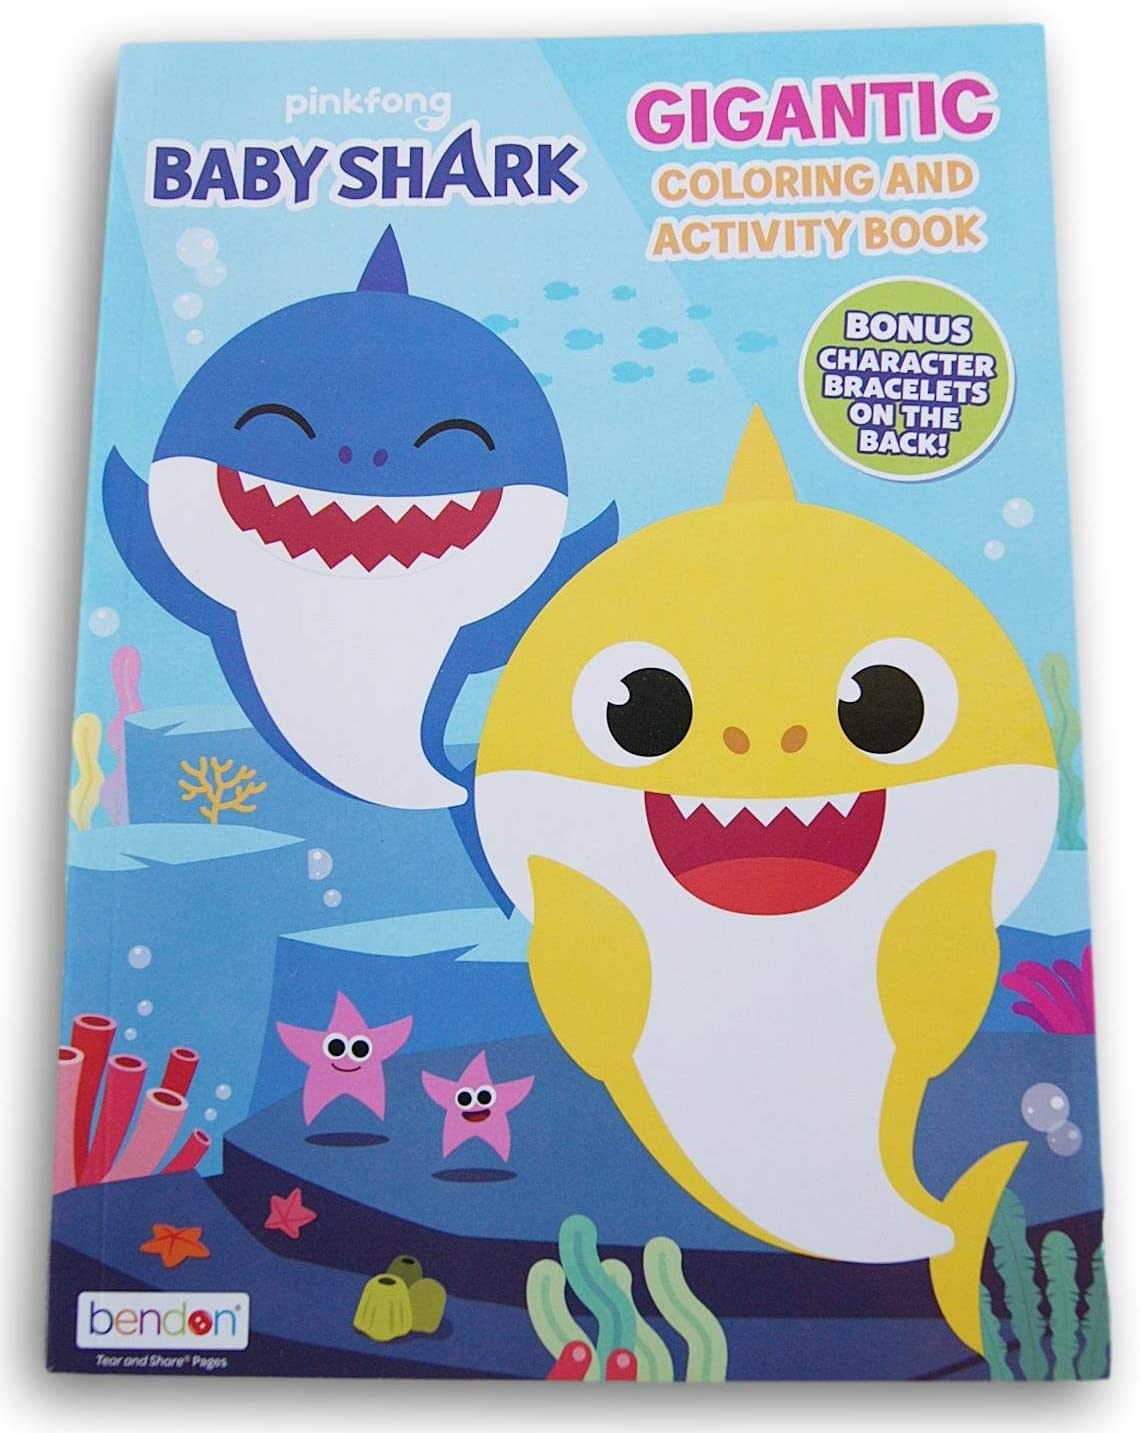 Pinkfong Baby Shark Gigantic Coloring and Activity Book - 192 Pages